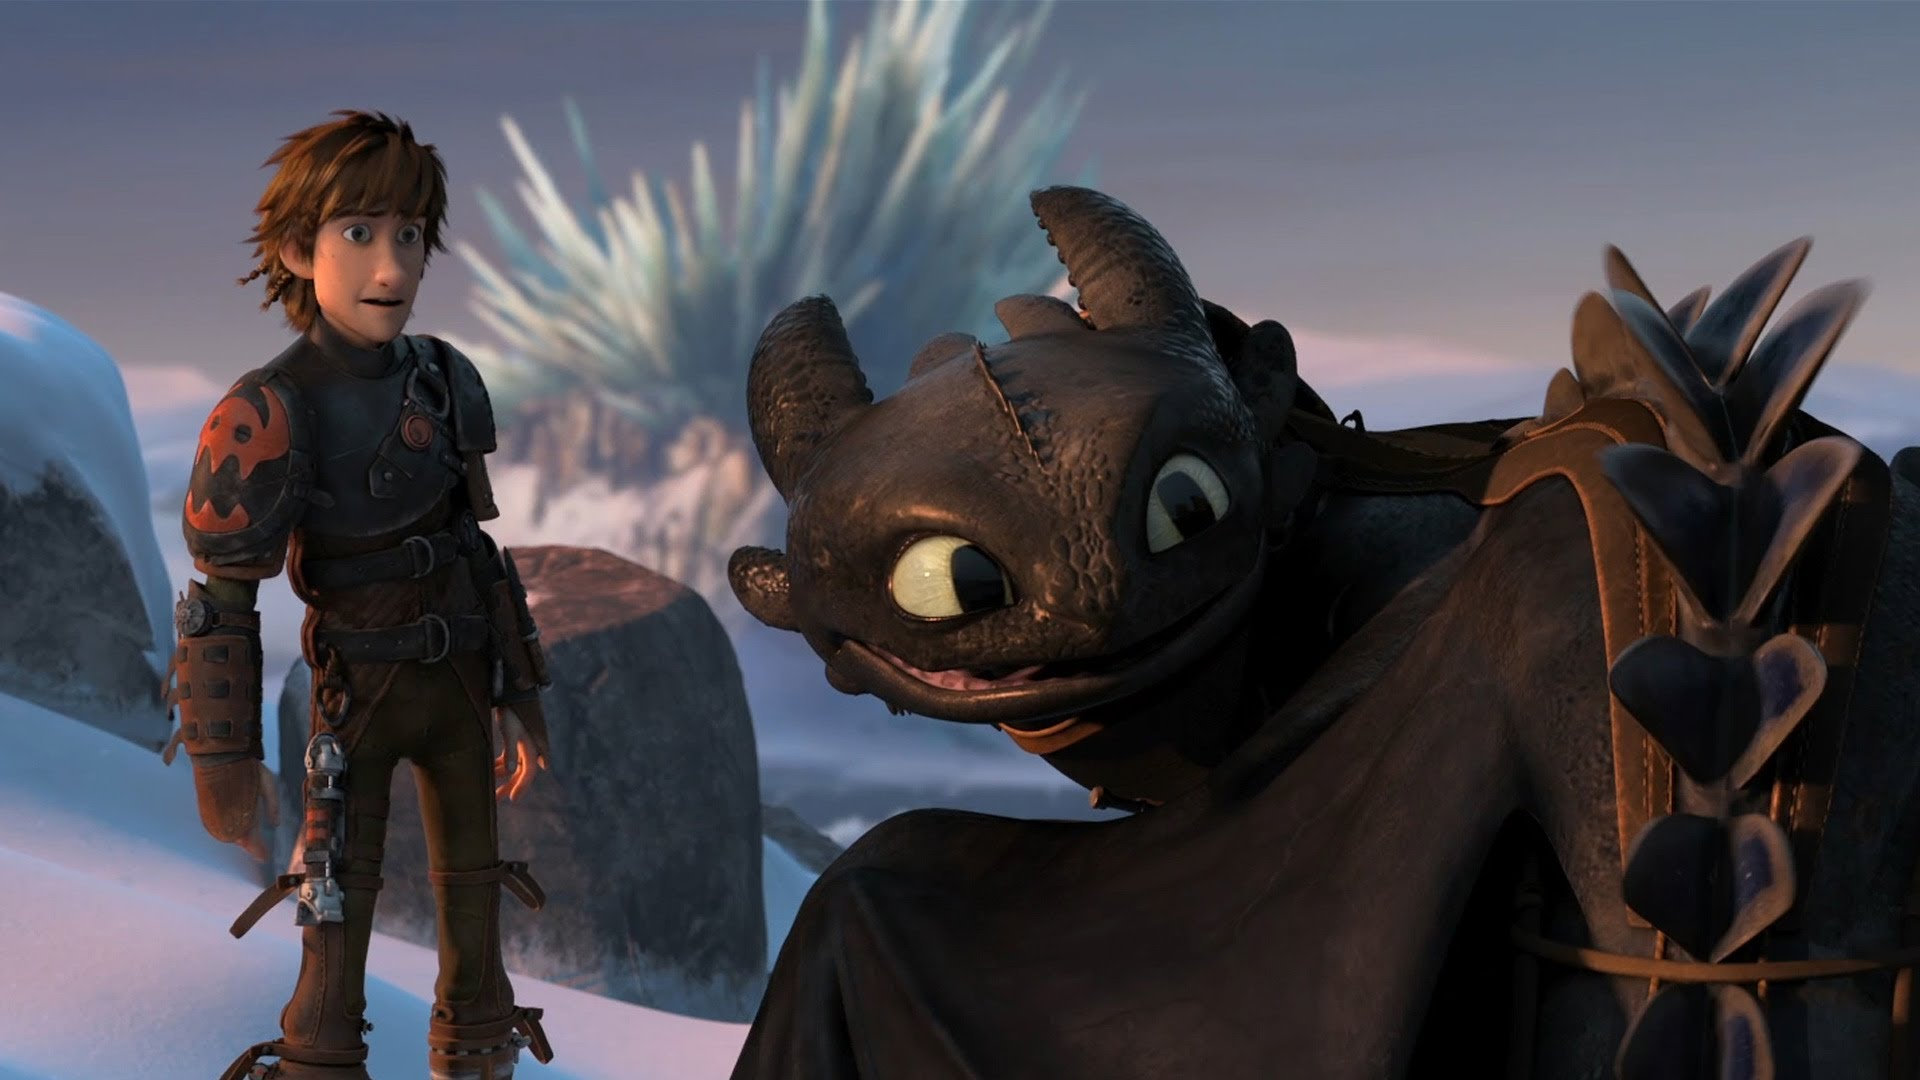 How To Train Your Dragon 2 Wallpaper 1920x1080 54508